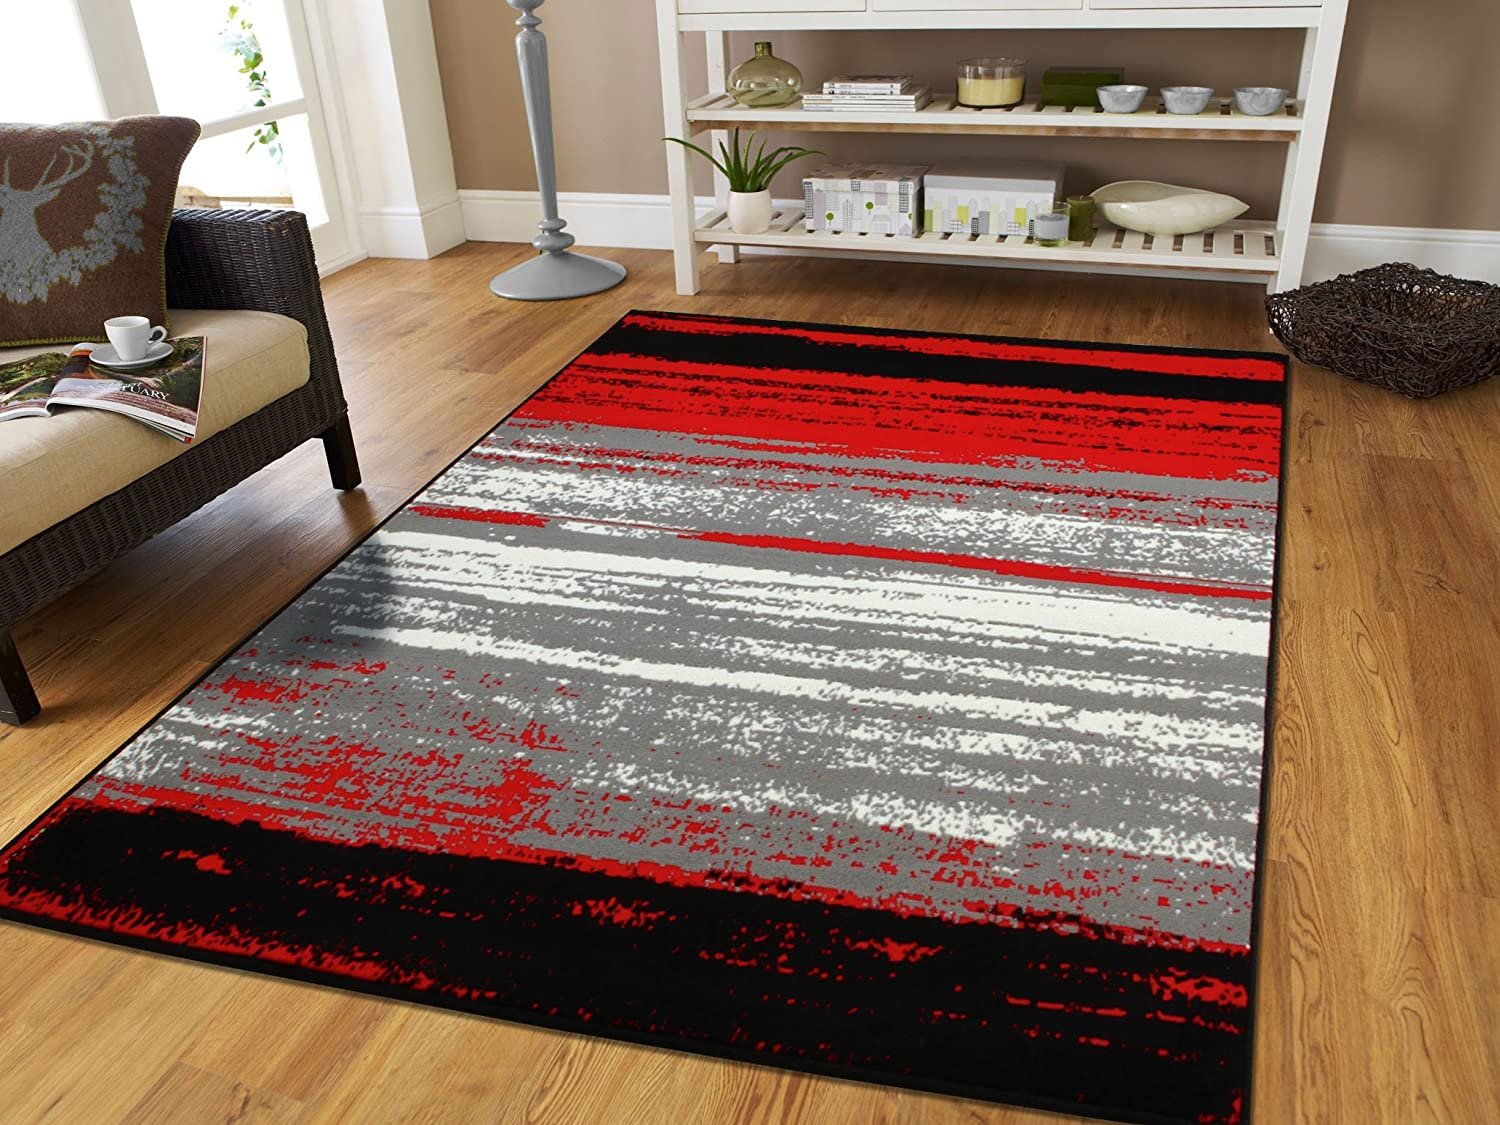 amazoncom large grey modern rugs for living room x abstract area rugsrugs for office and kitchen clearance red black ivory cheap rug sets . amazoncom large grey modern rugs for living room x abstract